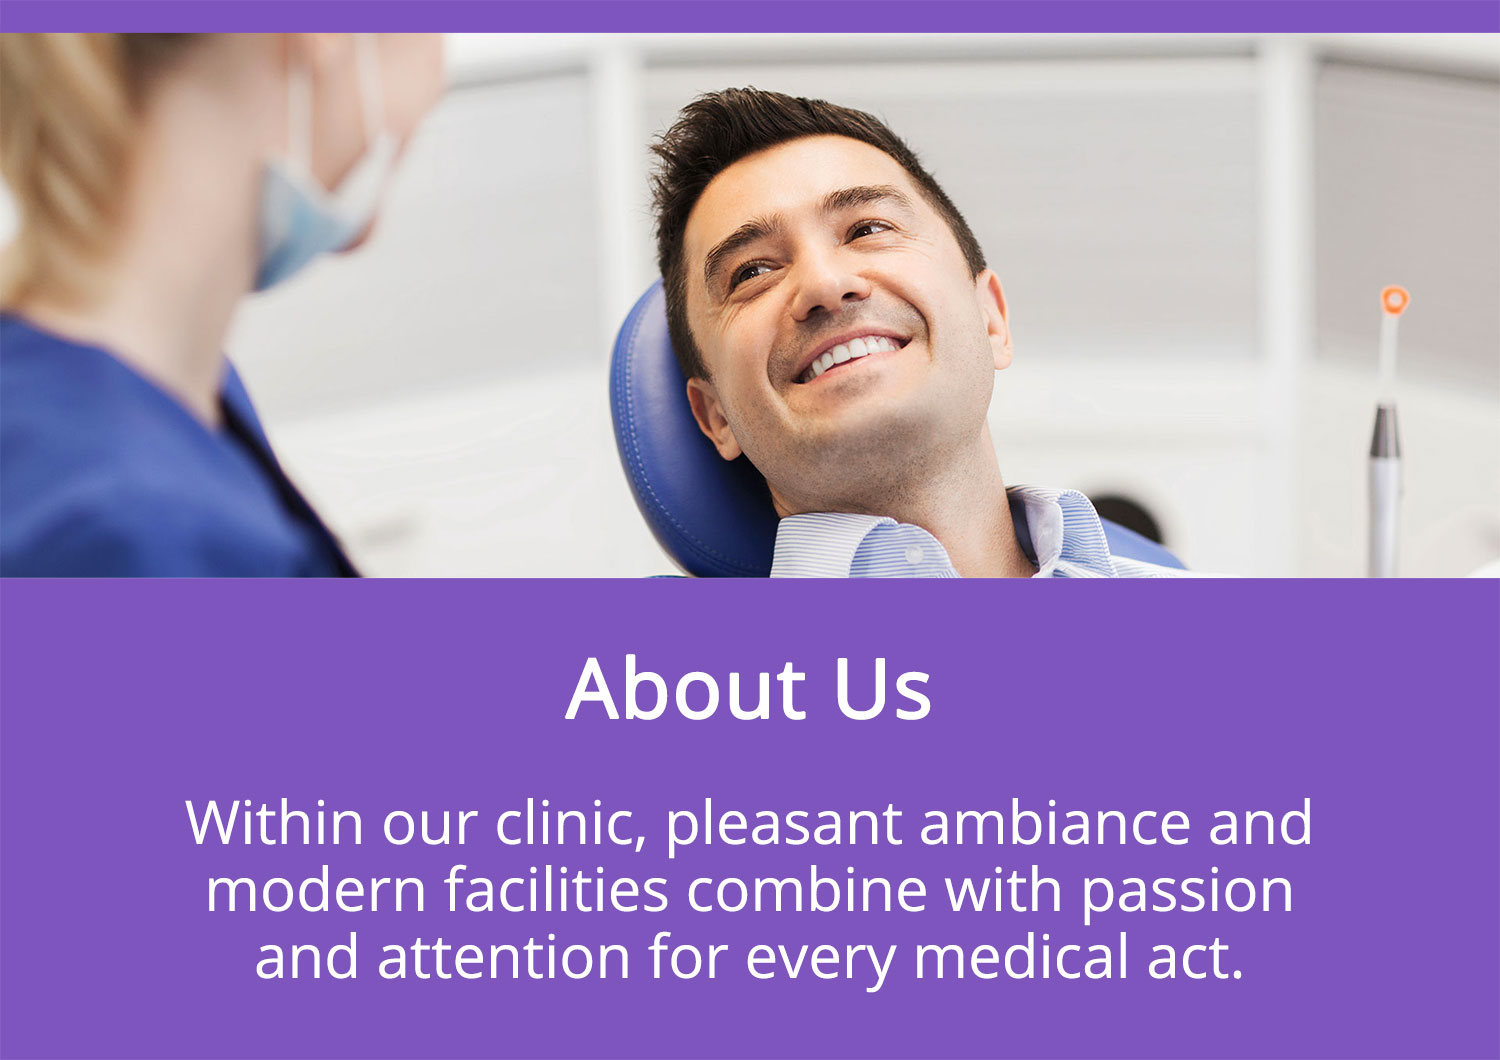 About Us - Diana Smile Dental Clinic